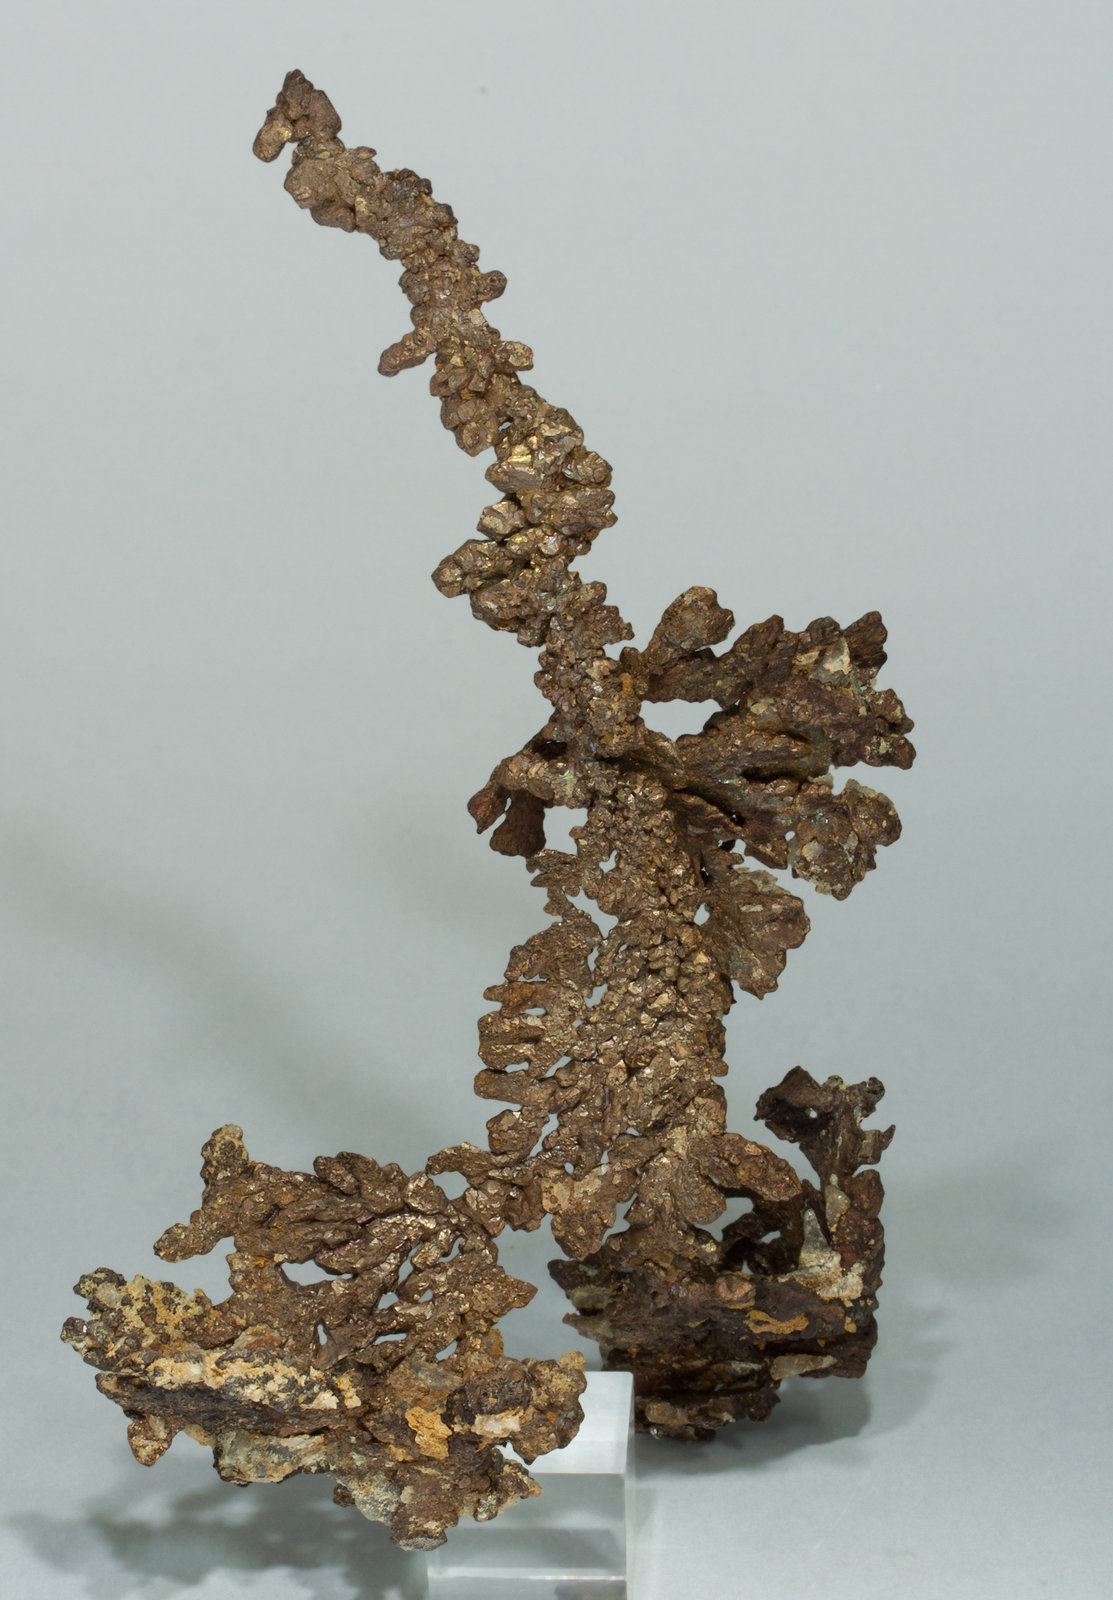 specimens/s_imagesY9/Copper-VA47Y9f.jpg